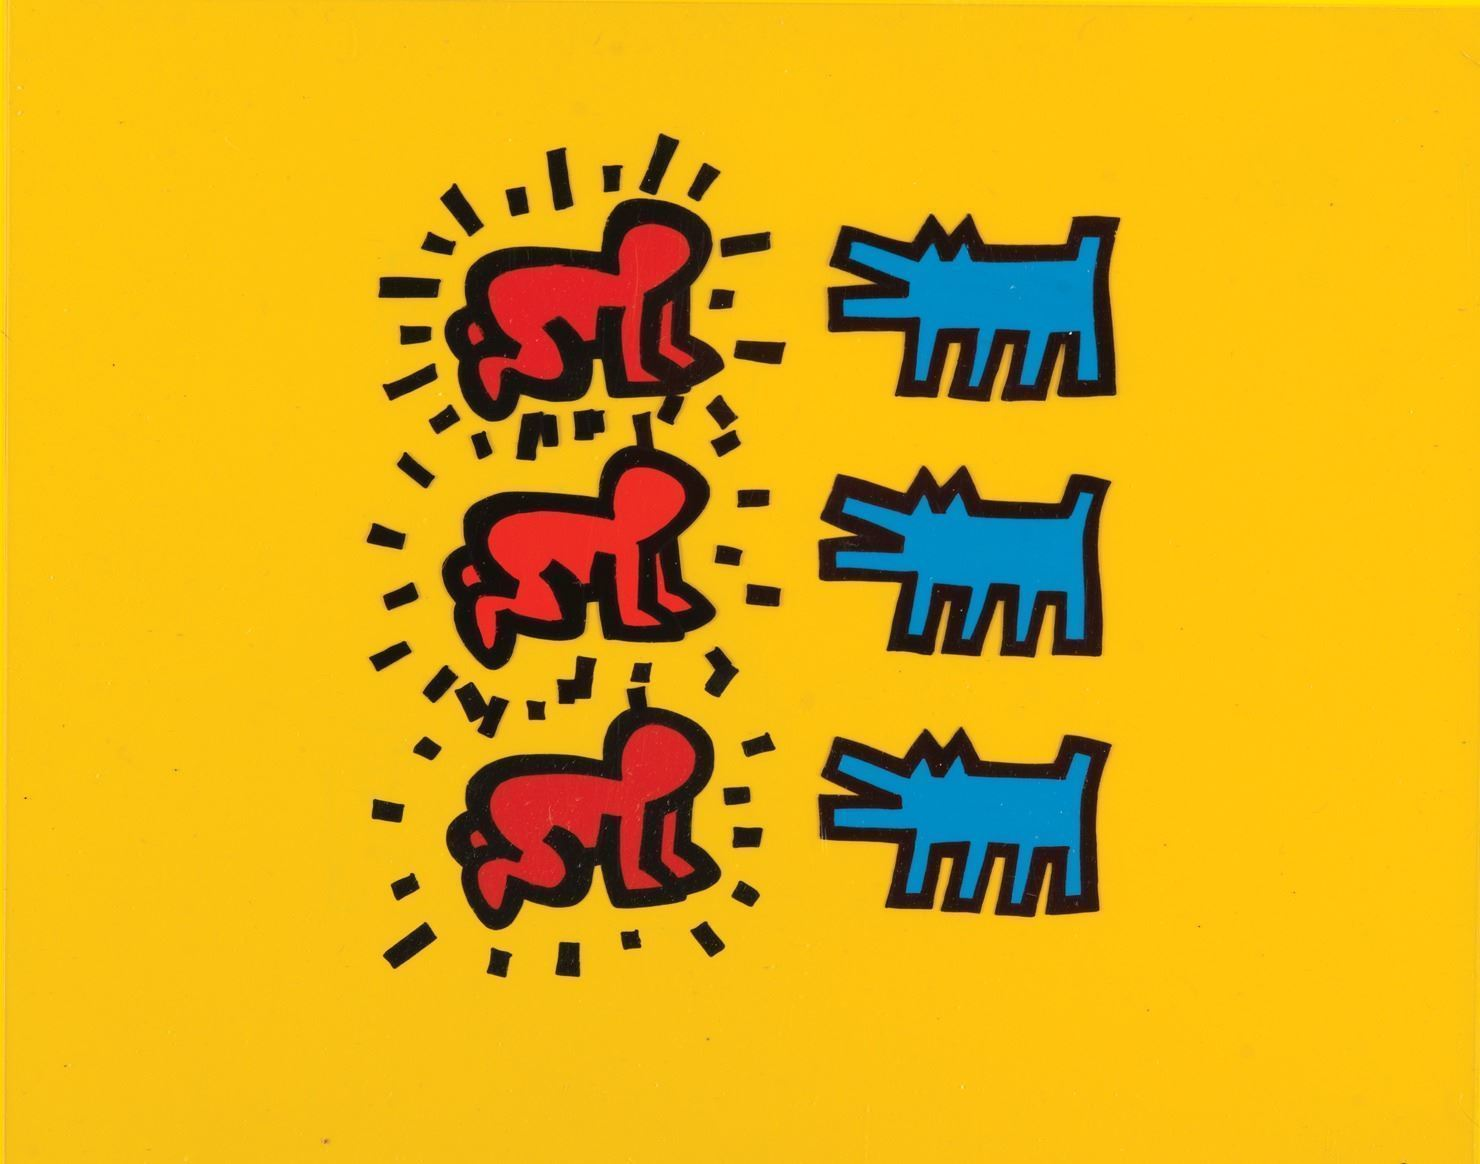 "Keith Haring Foundation produktion av ""Babies and Dogs"" från Sesame Street. (Sesame Street/Keith Haring Foundation, 1991)"